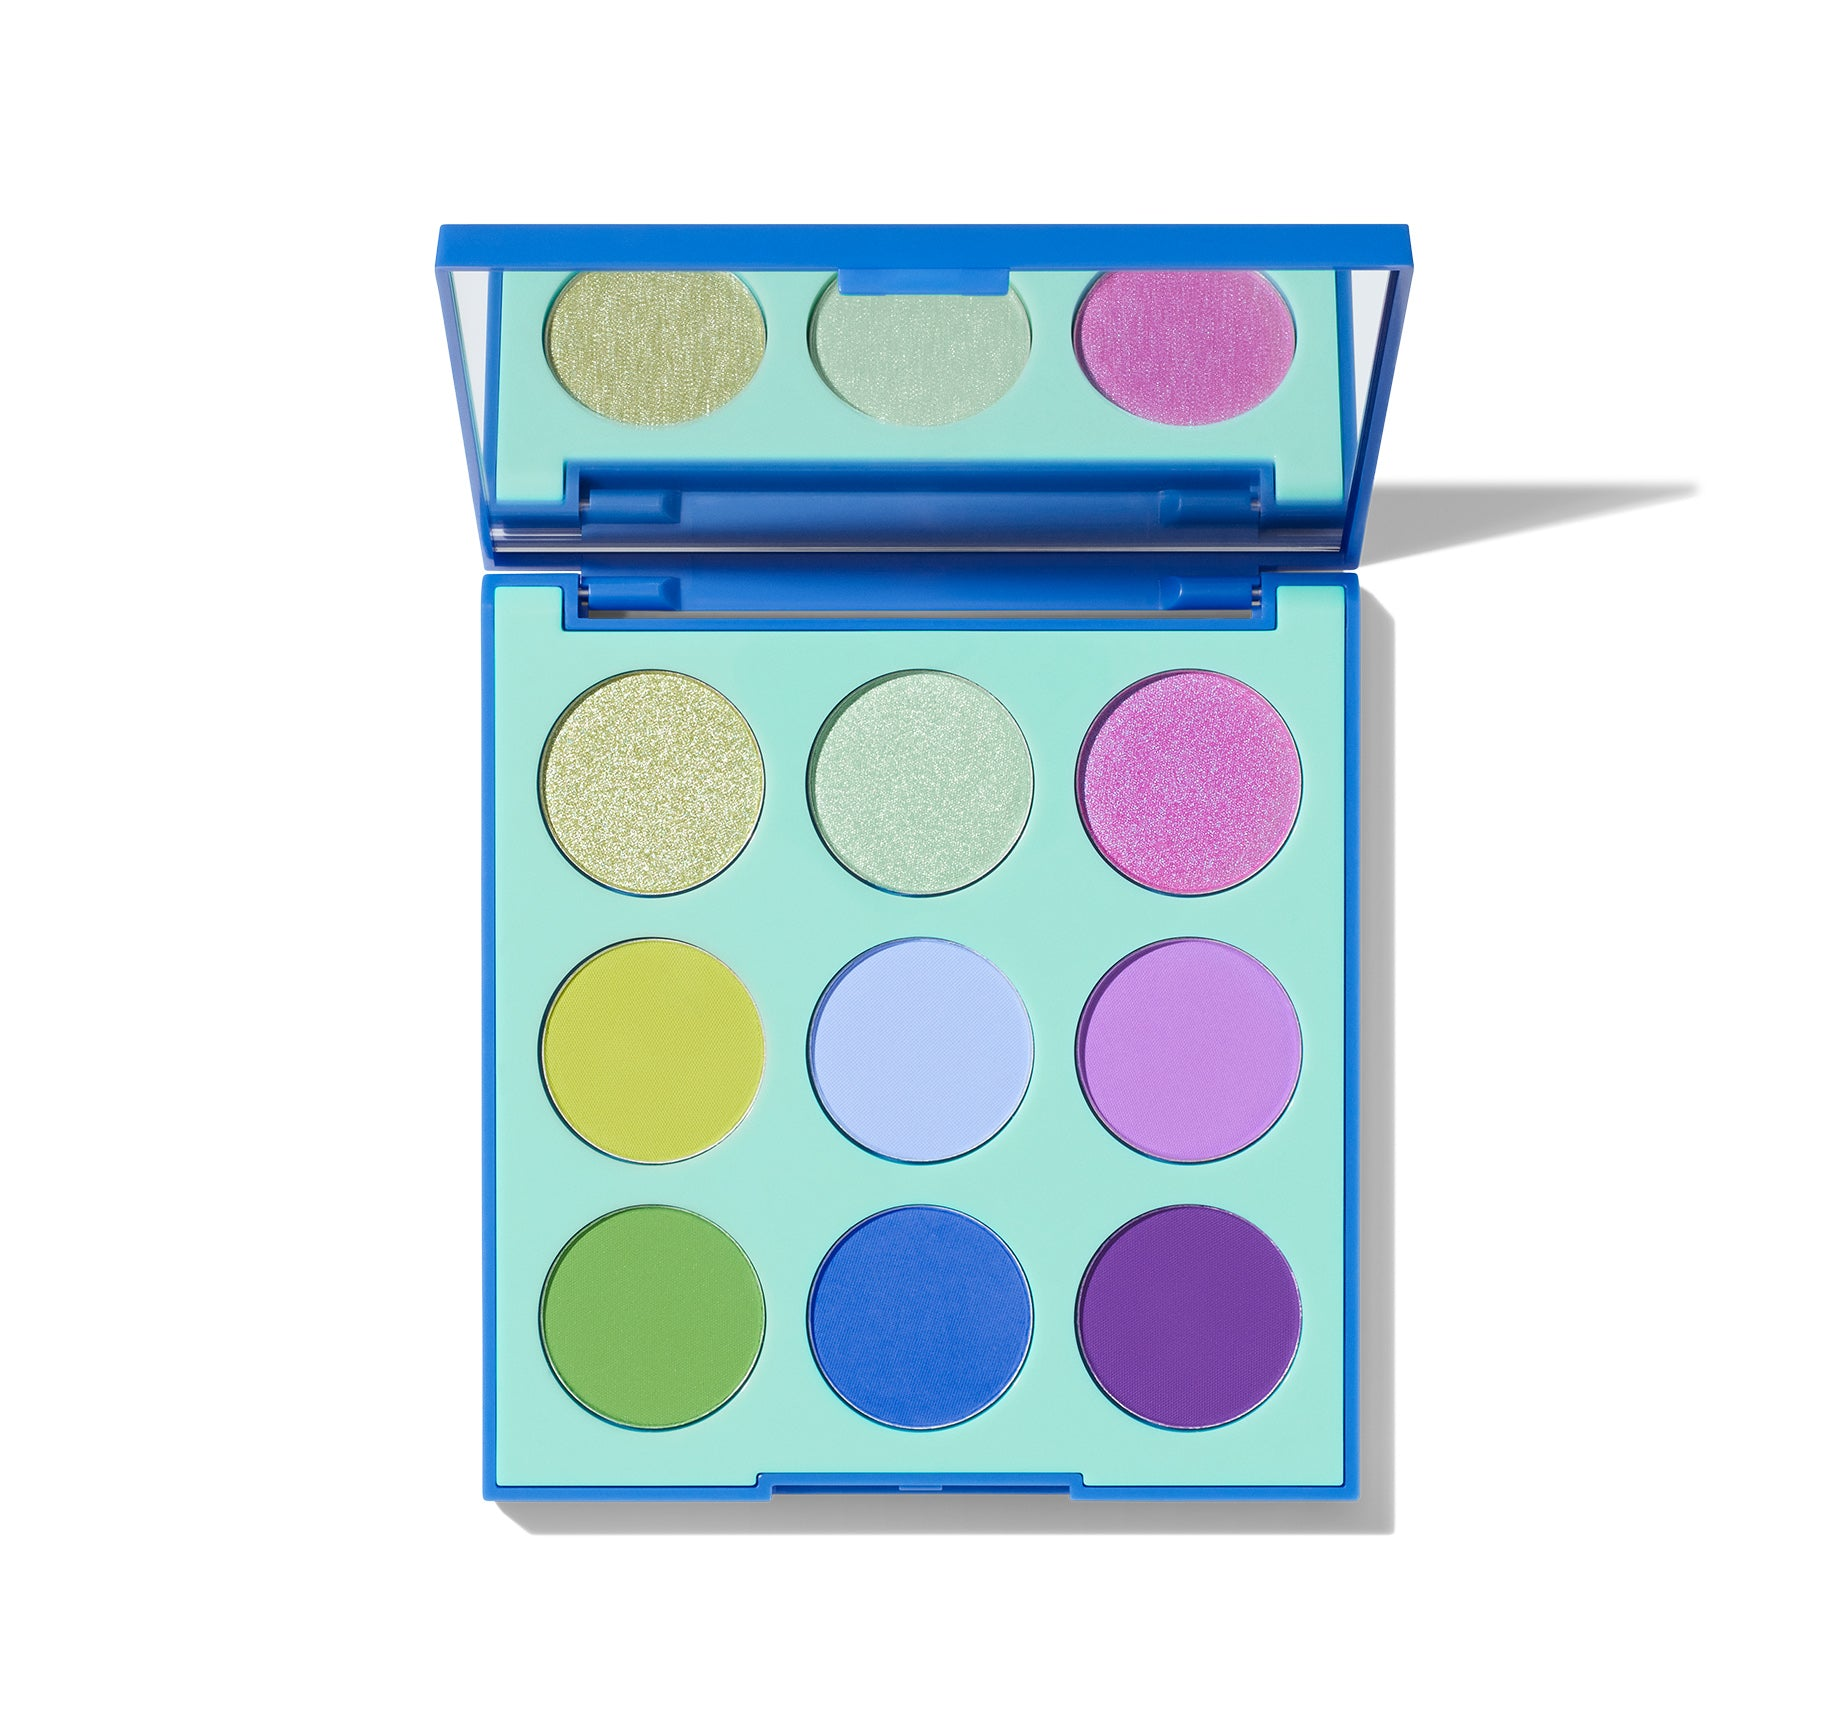 9C COLOR ME COOL ARTISTRY PALETTE, view larger image